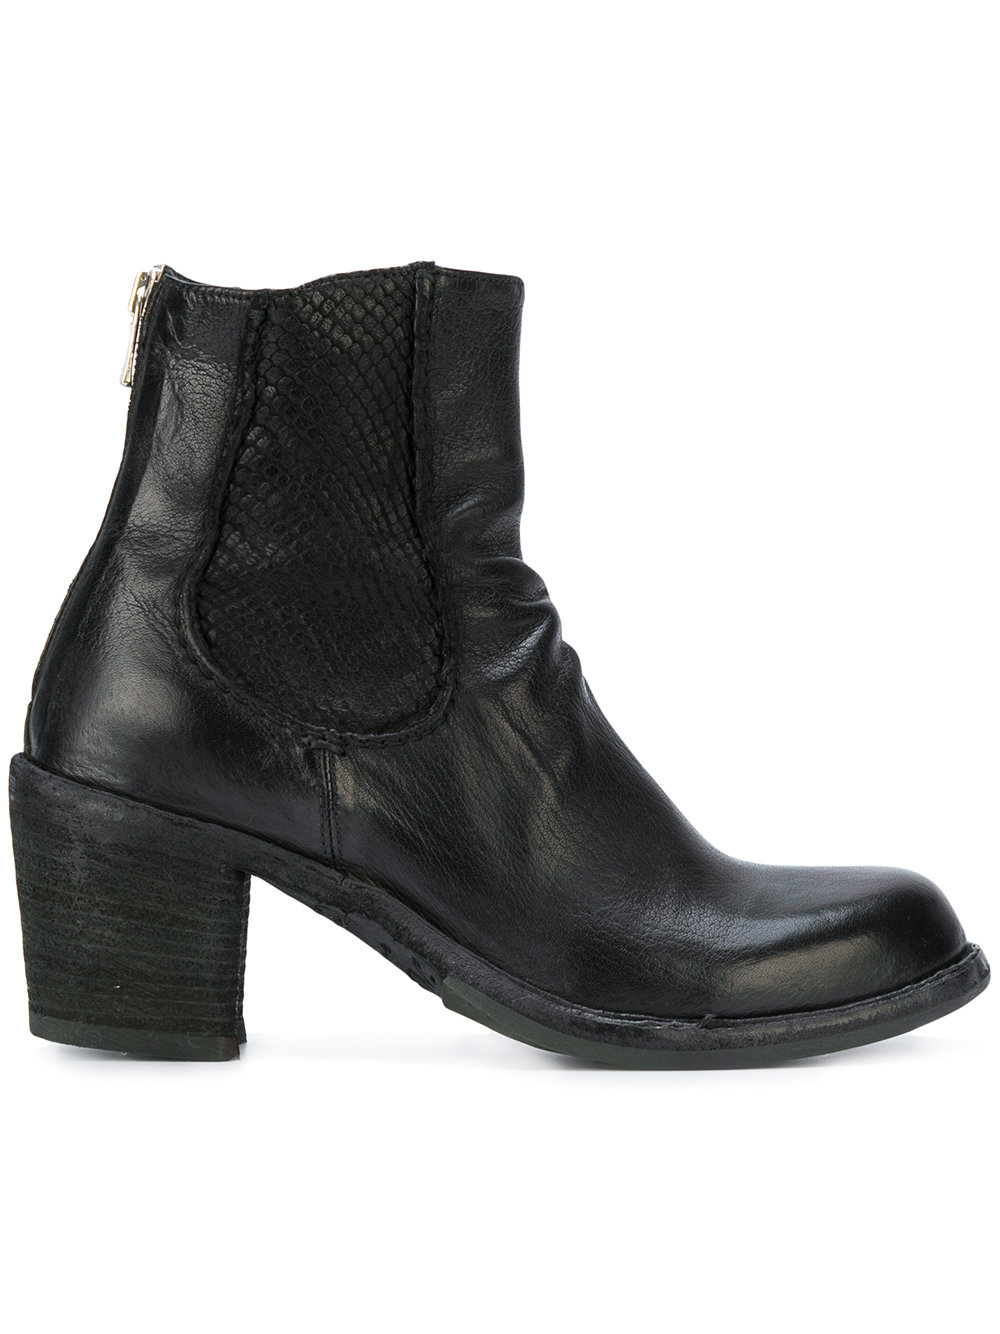 Bottines femme officine creative